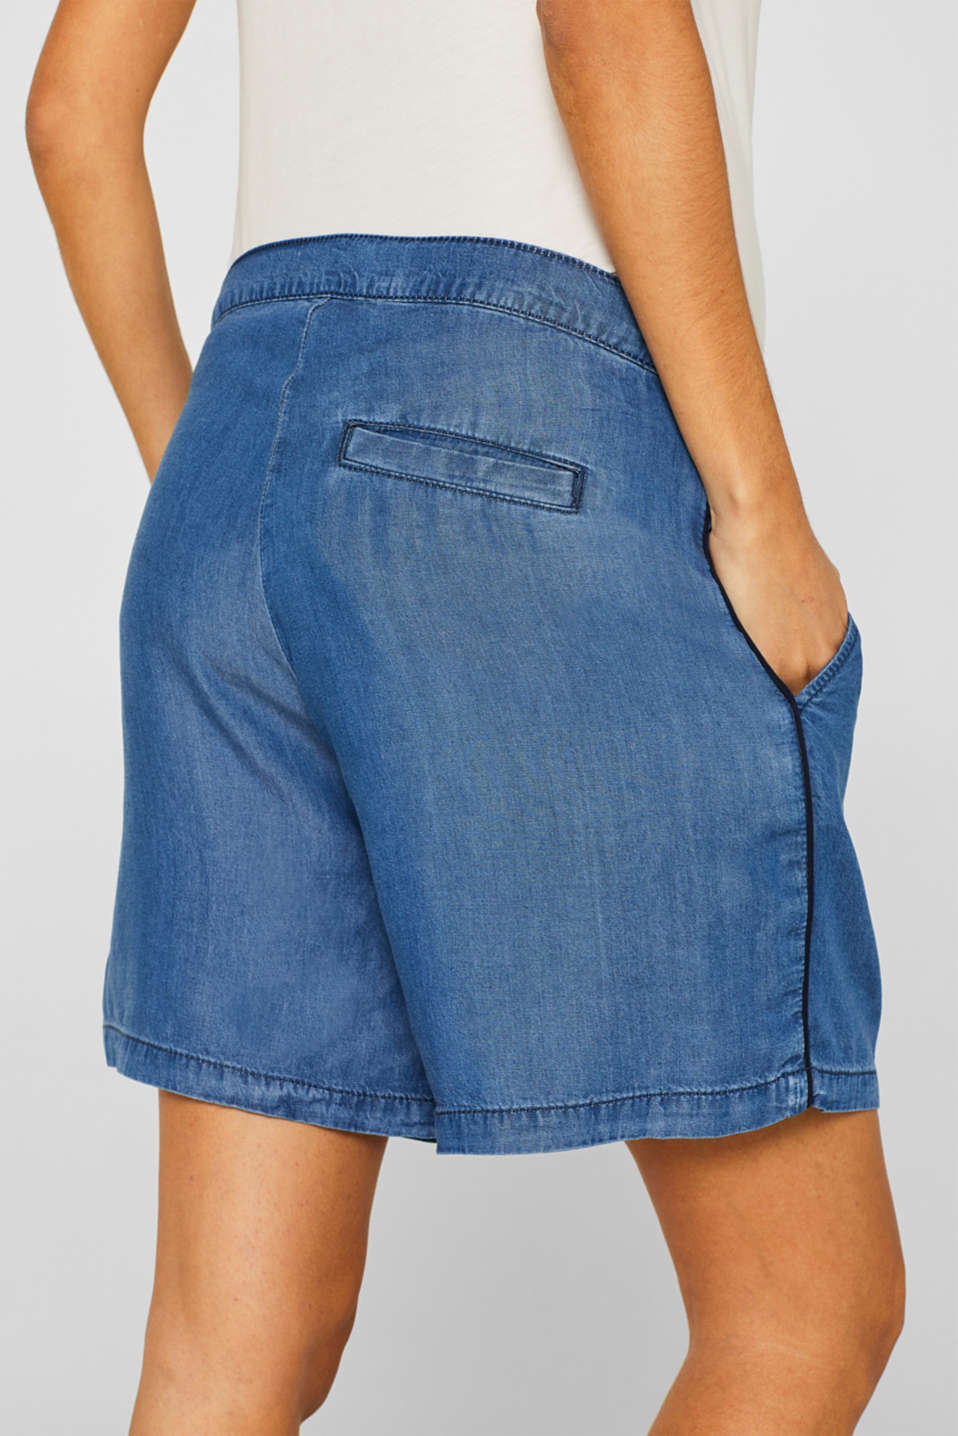 Denim-effect shorts, 100% lyocell, LCLIGHT BLUE, detail image number 6